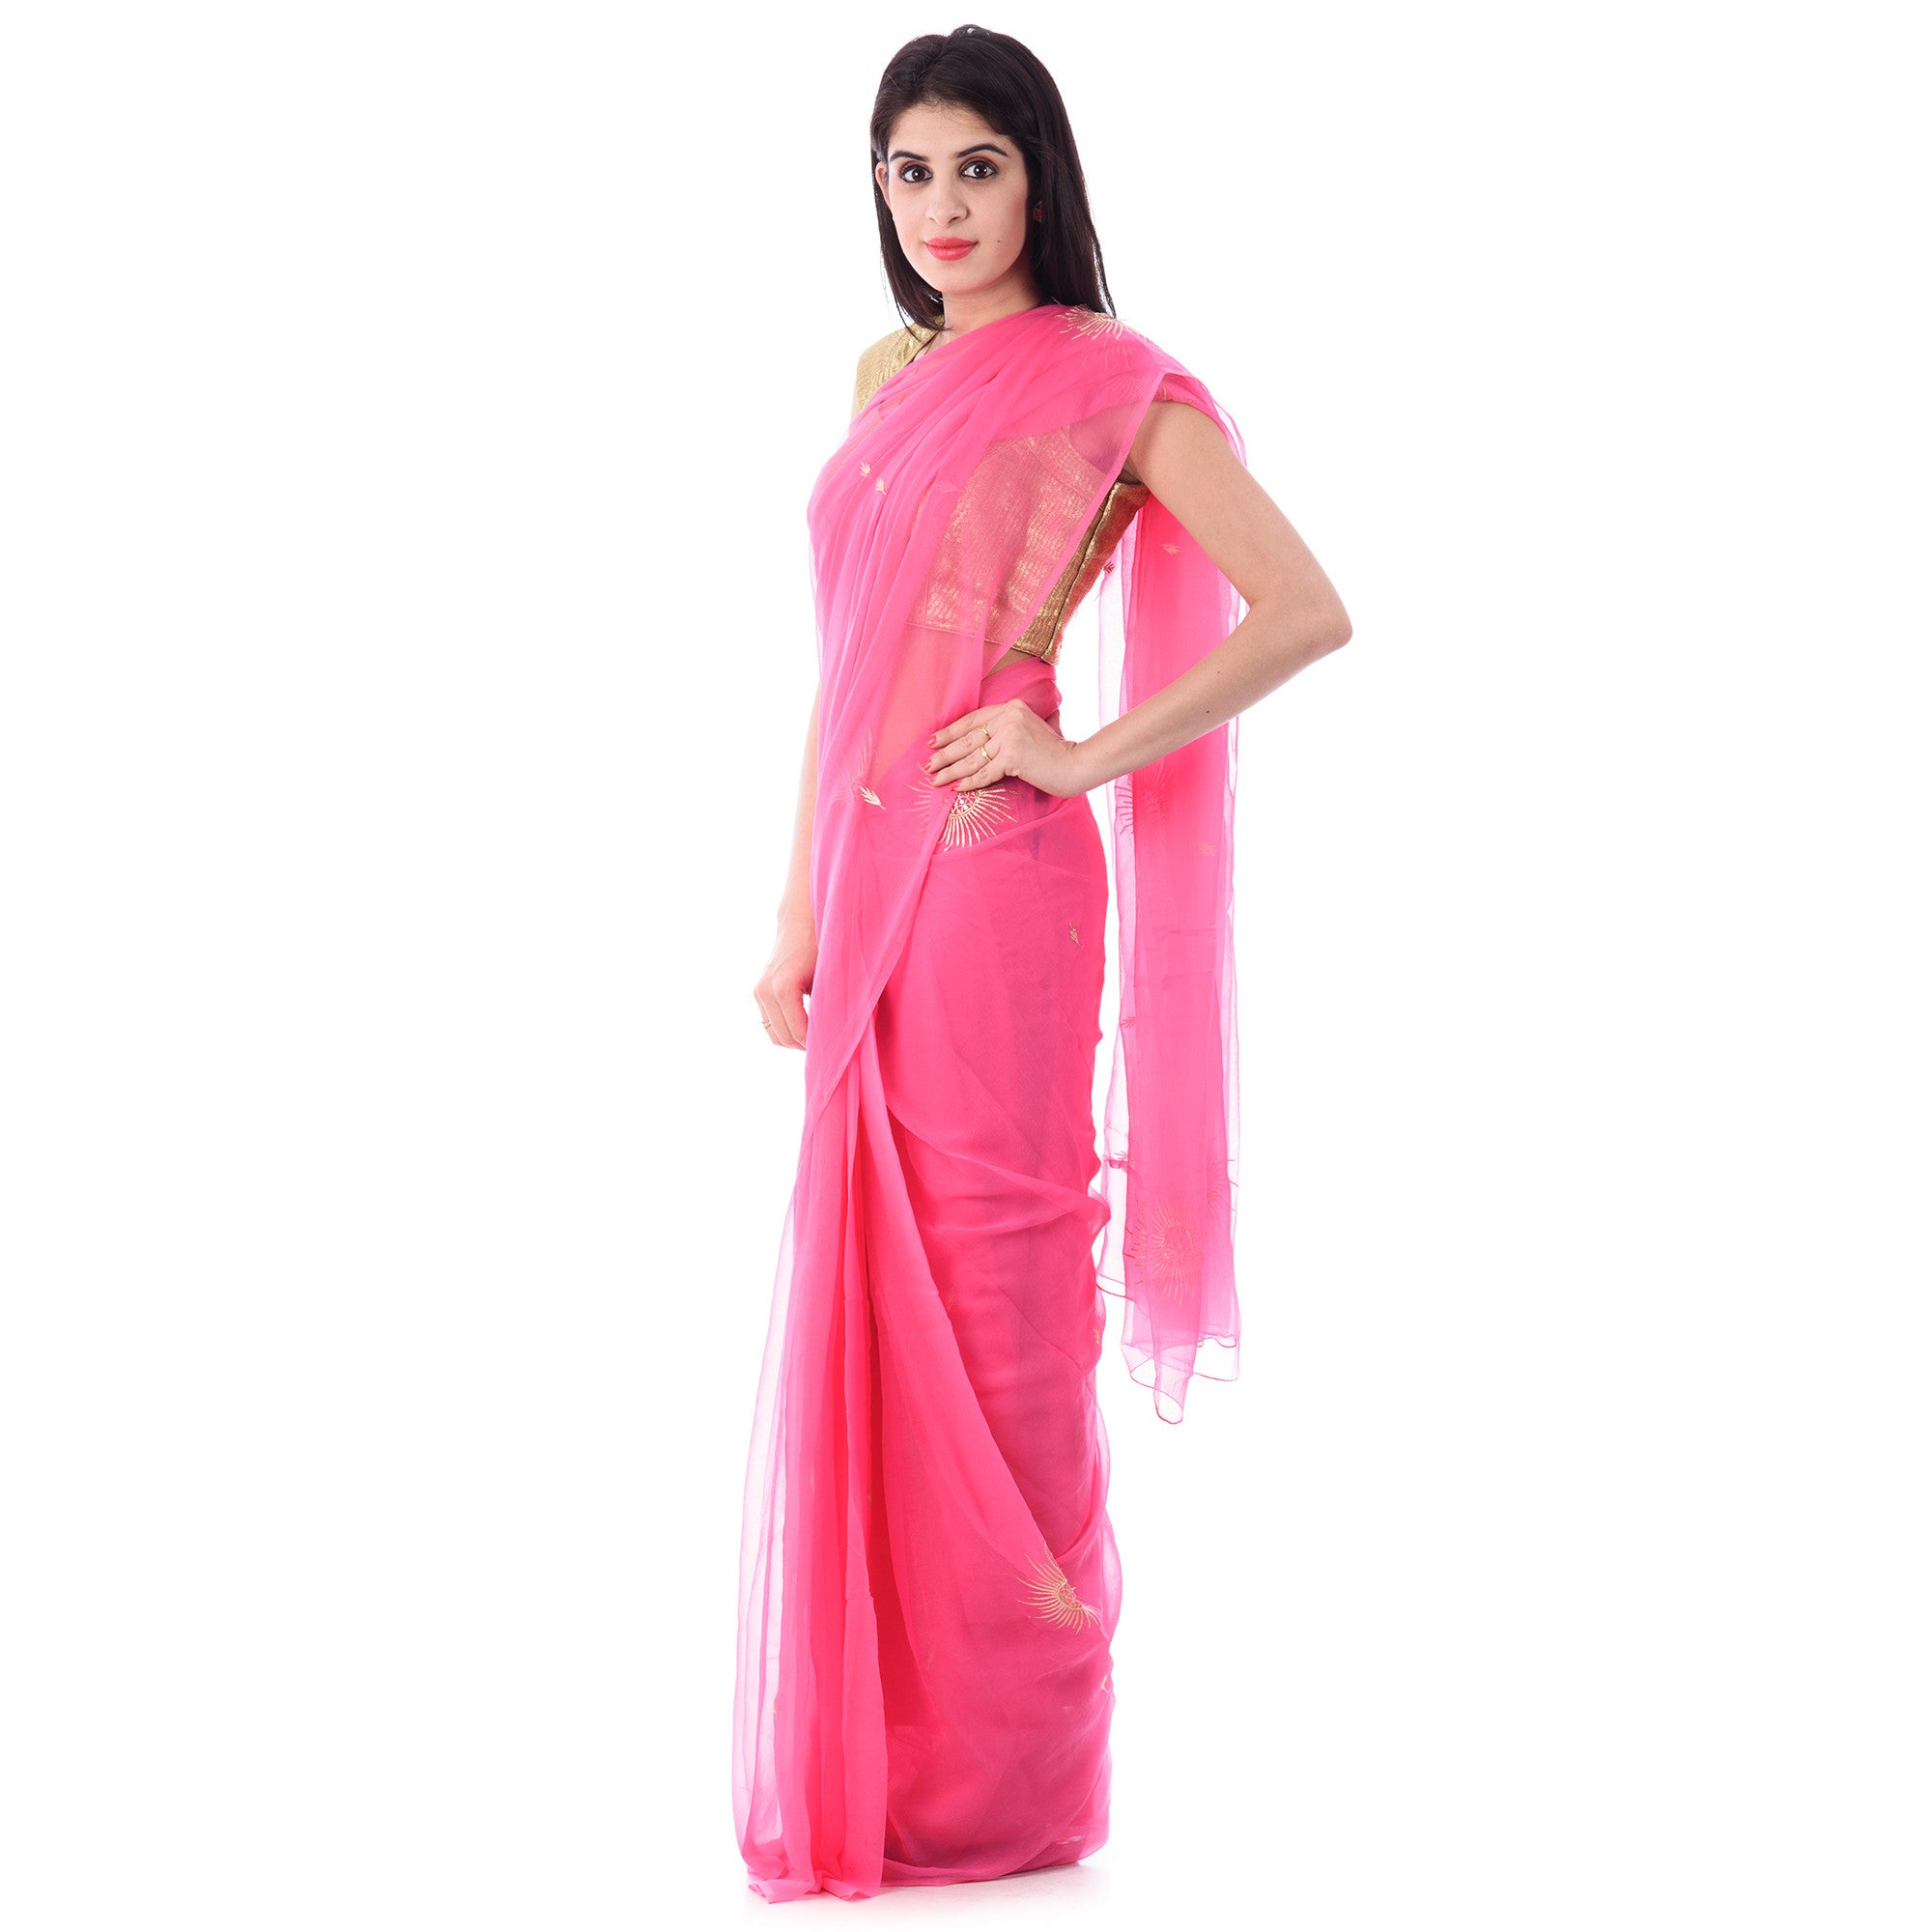 Pink Chiffion Saree With Intricate Aari Work Sun Motif and Blouse Piece - Shri Krishnam